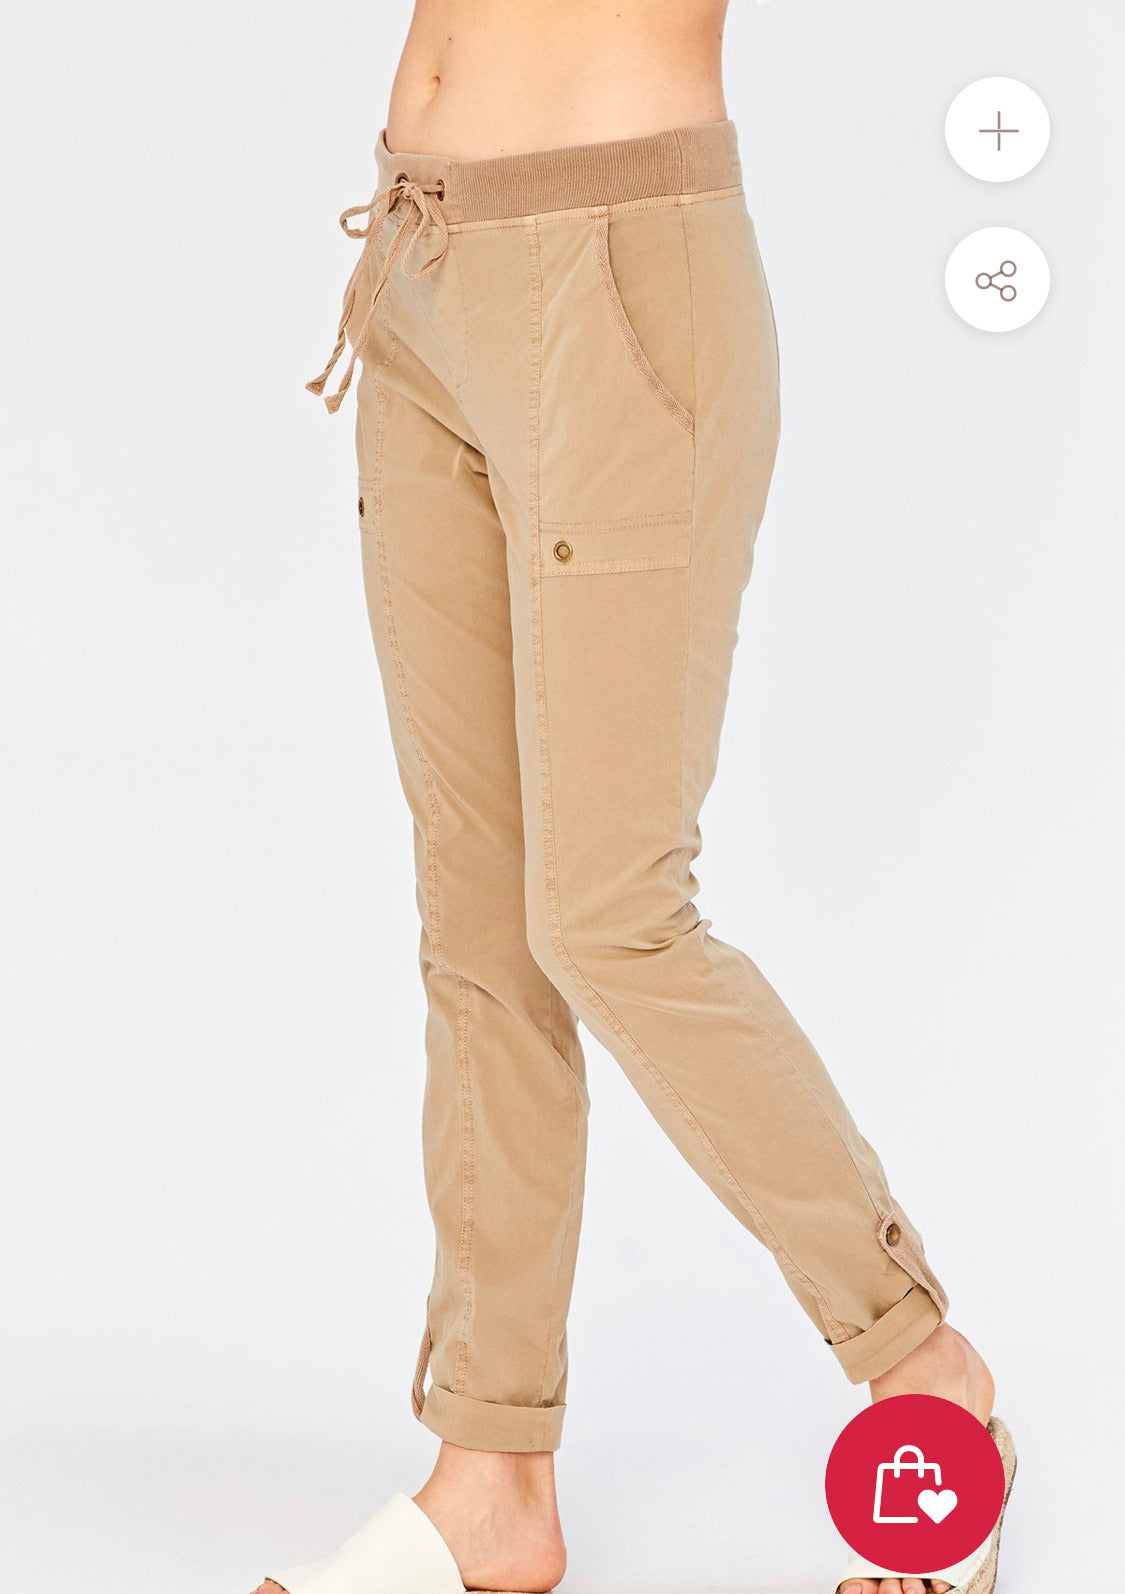 WEAR 22301 RIGHT ON PANT